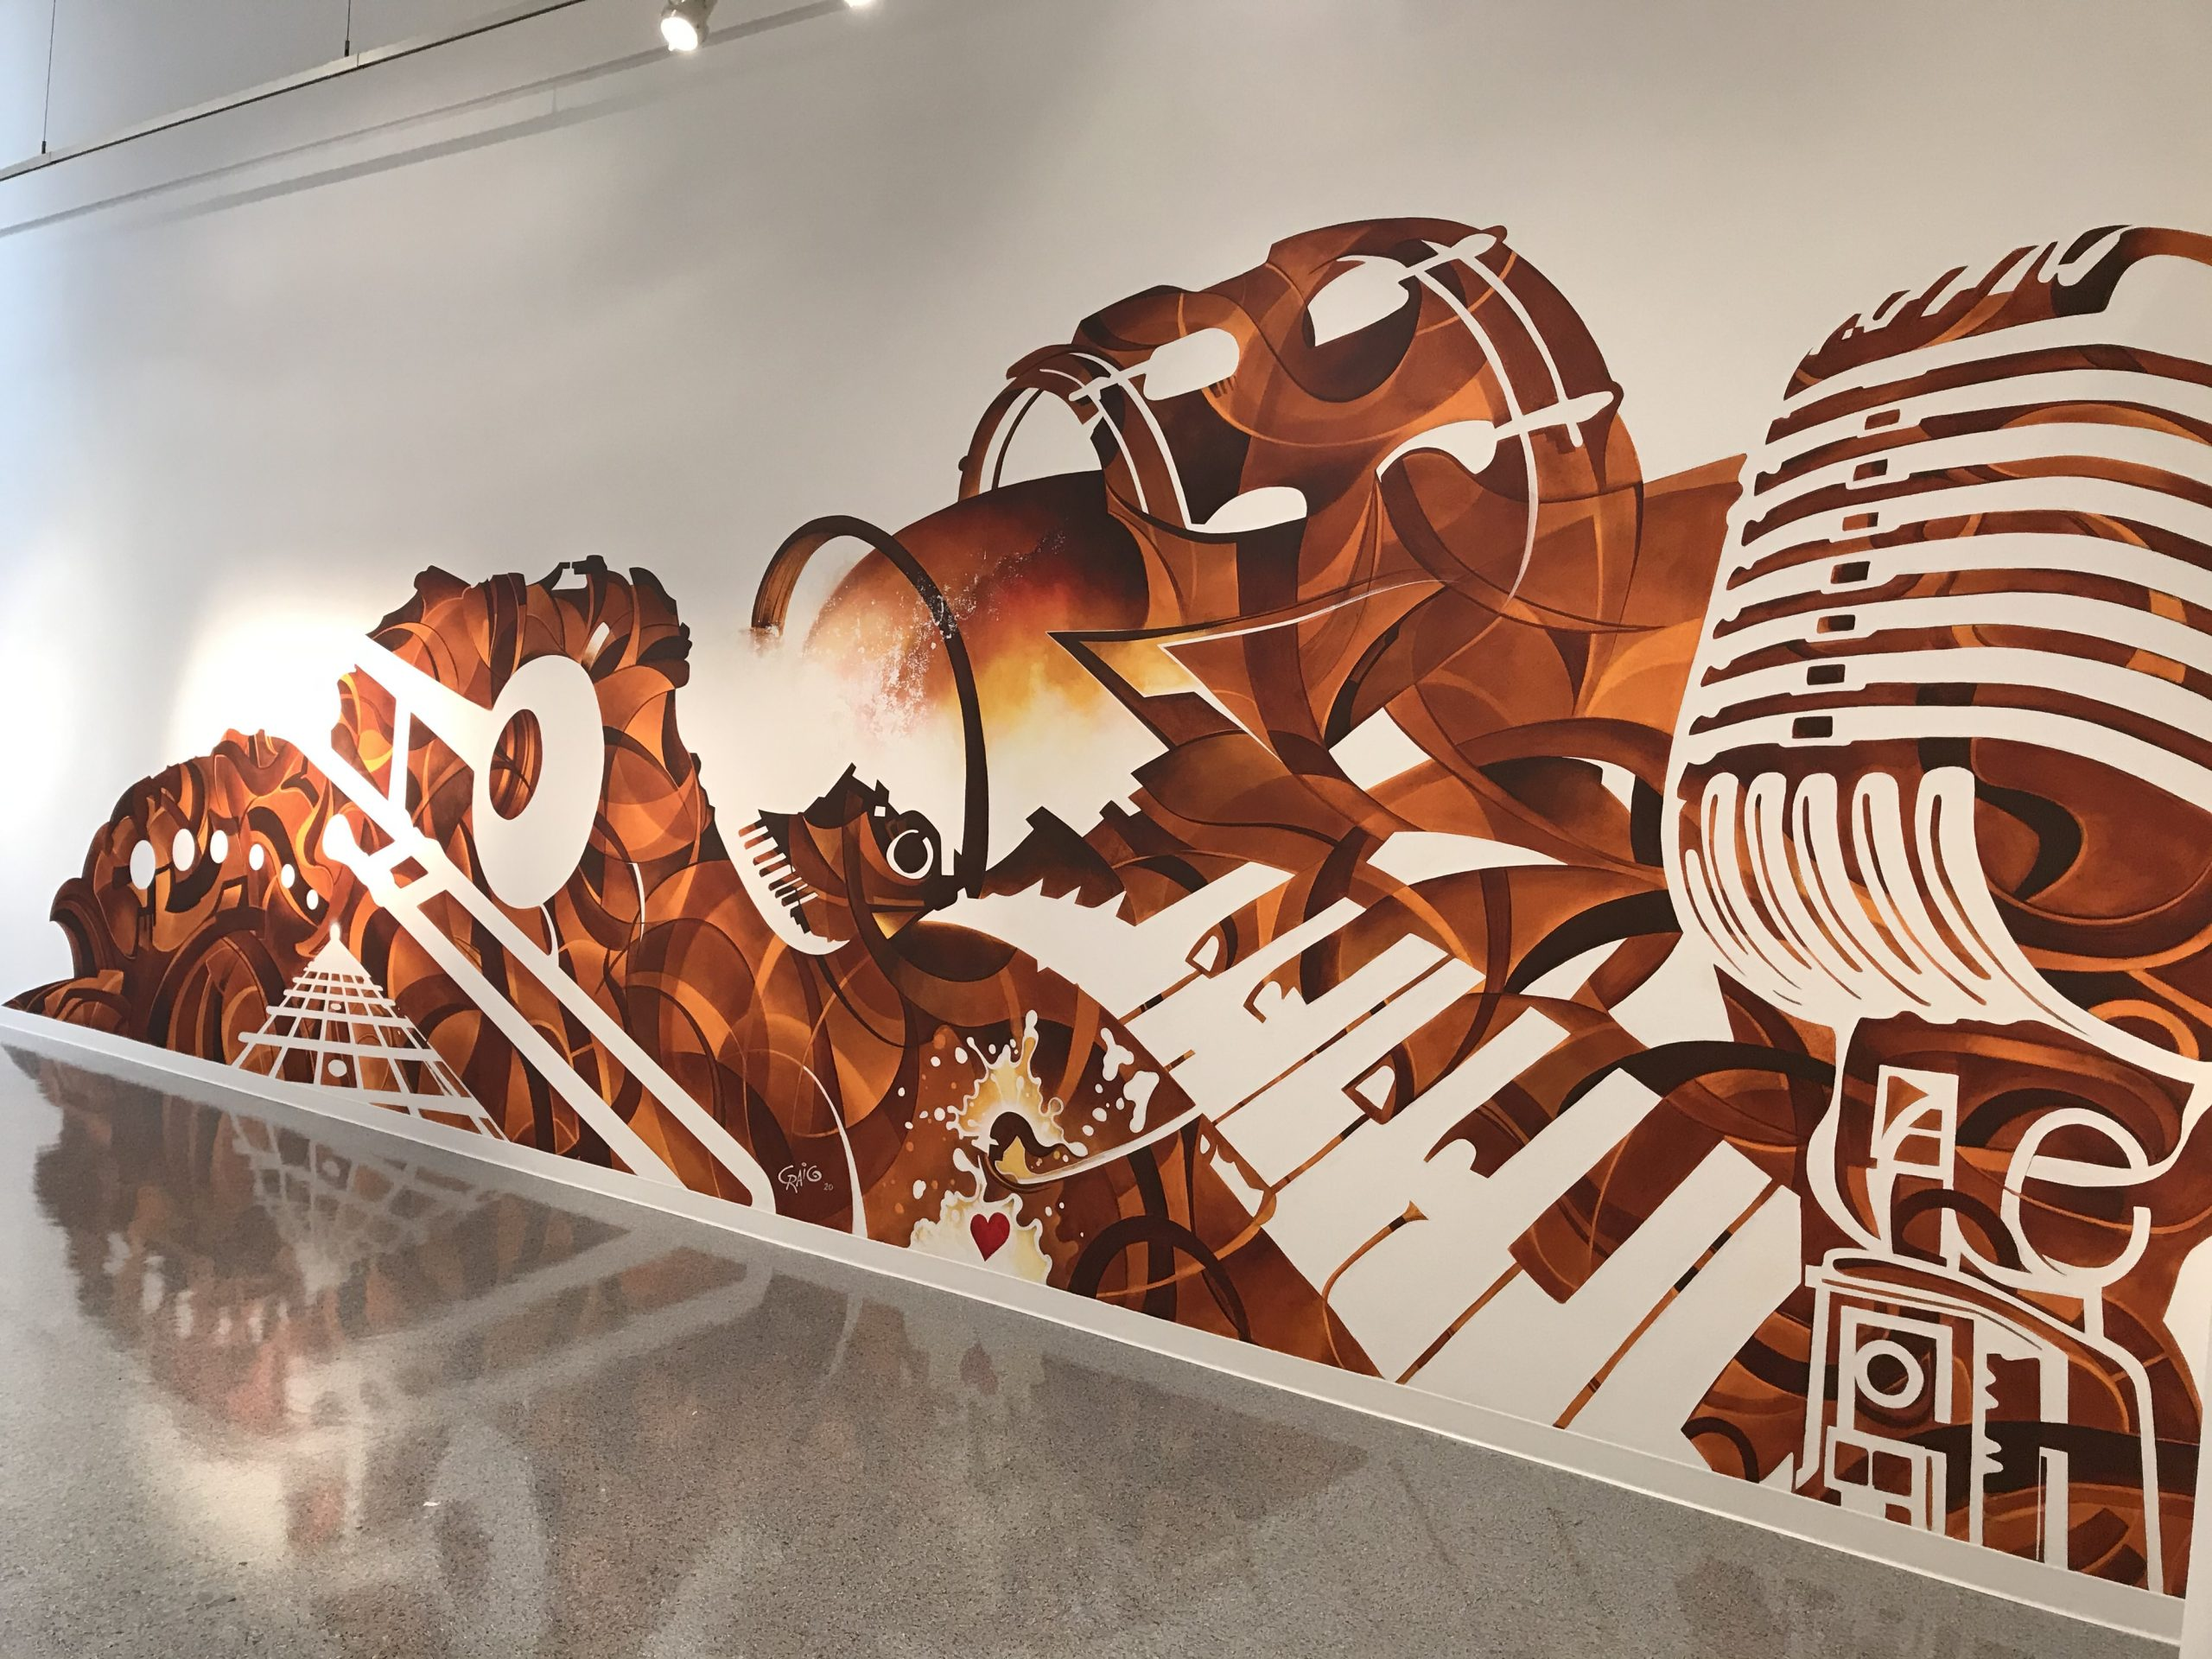 New Mural – Cherised graphic